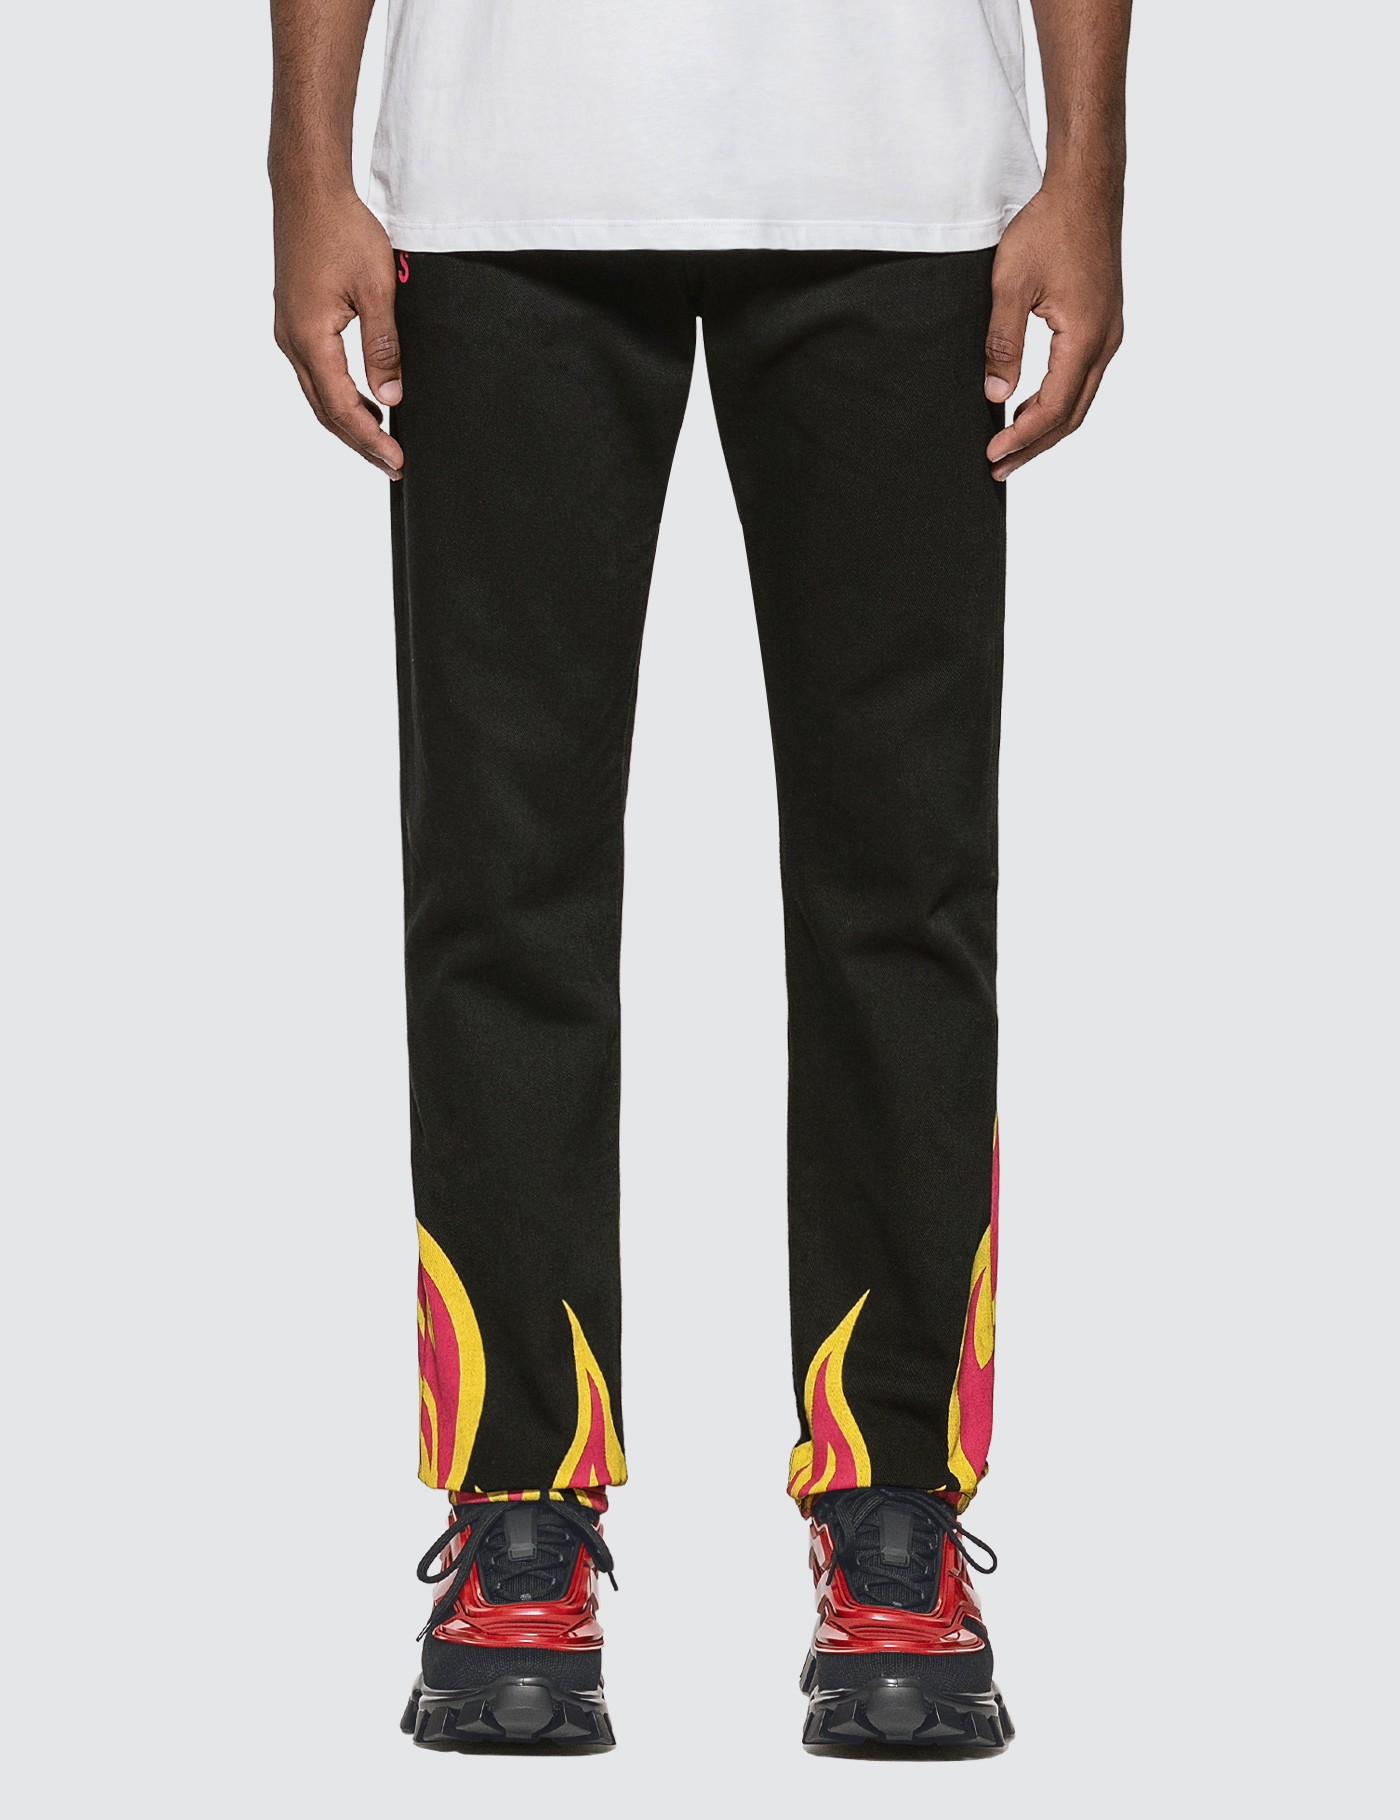 Flame Printed Jeans